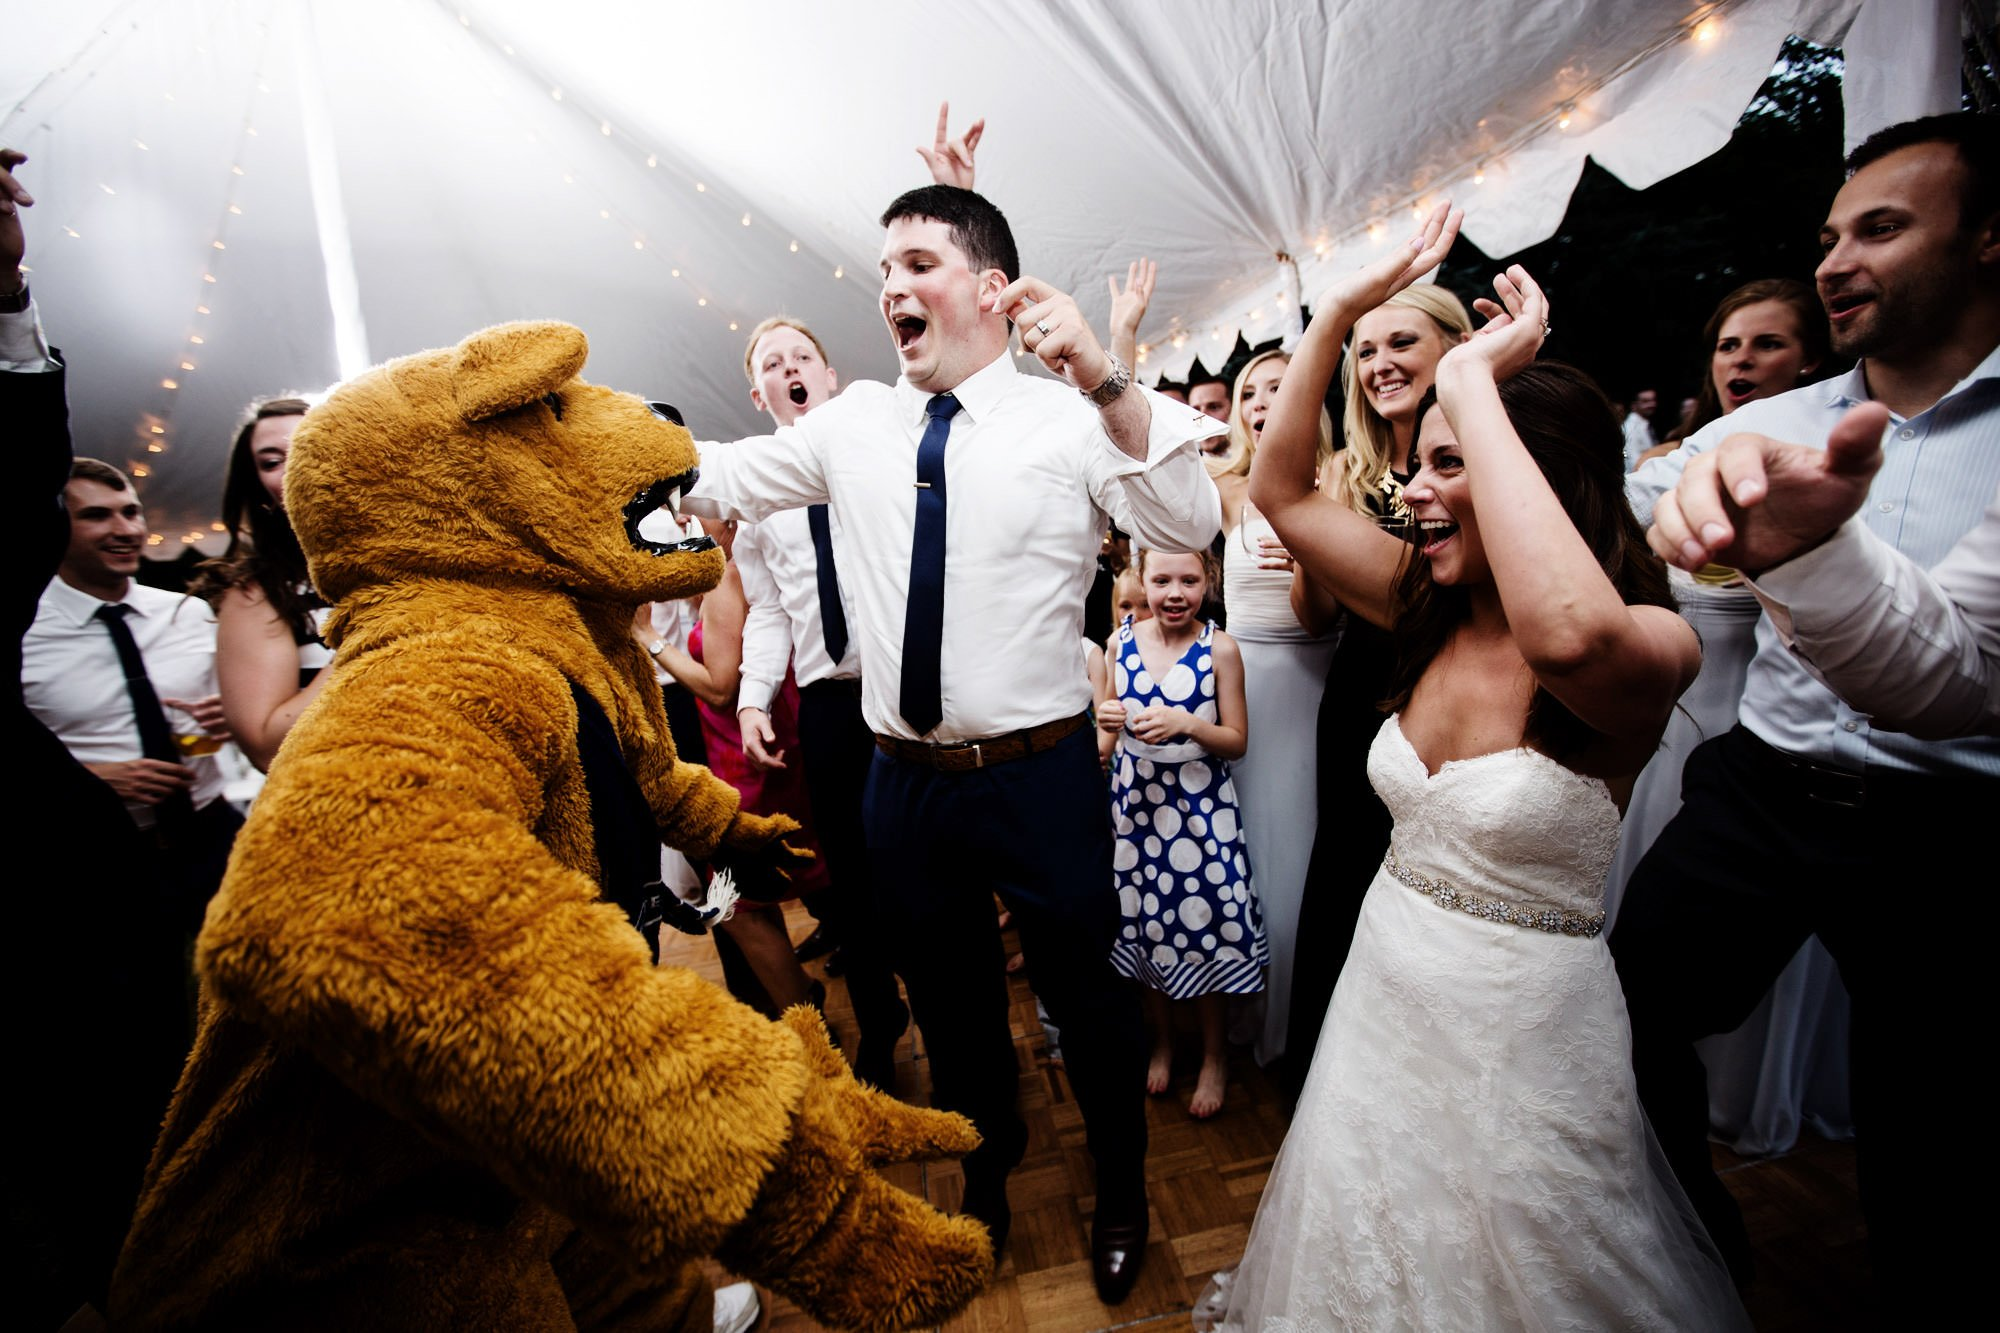 The Penn State Nittany Lion makes an appearance during the wedding reception at Hendry House.